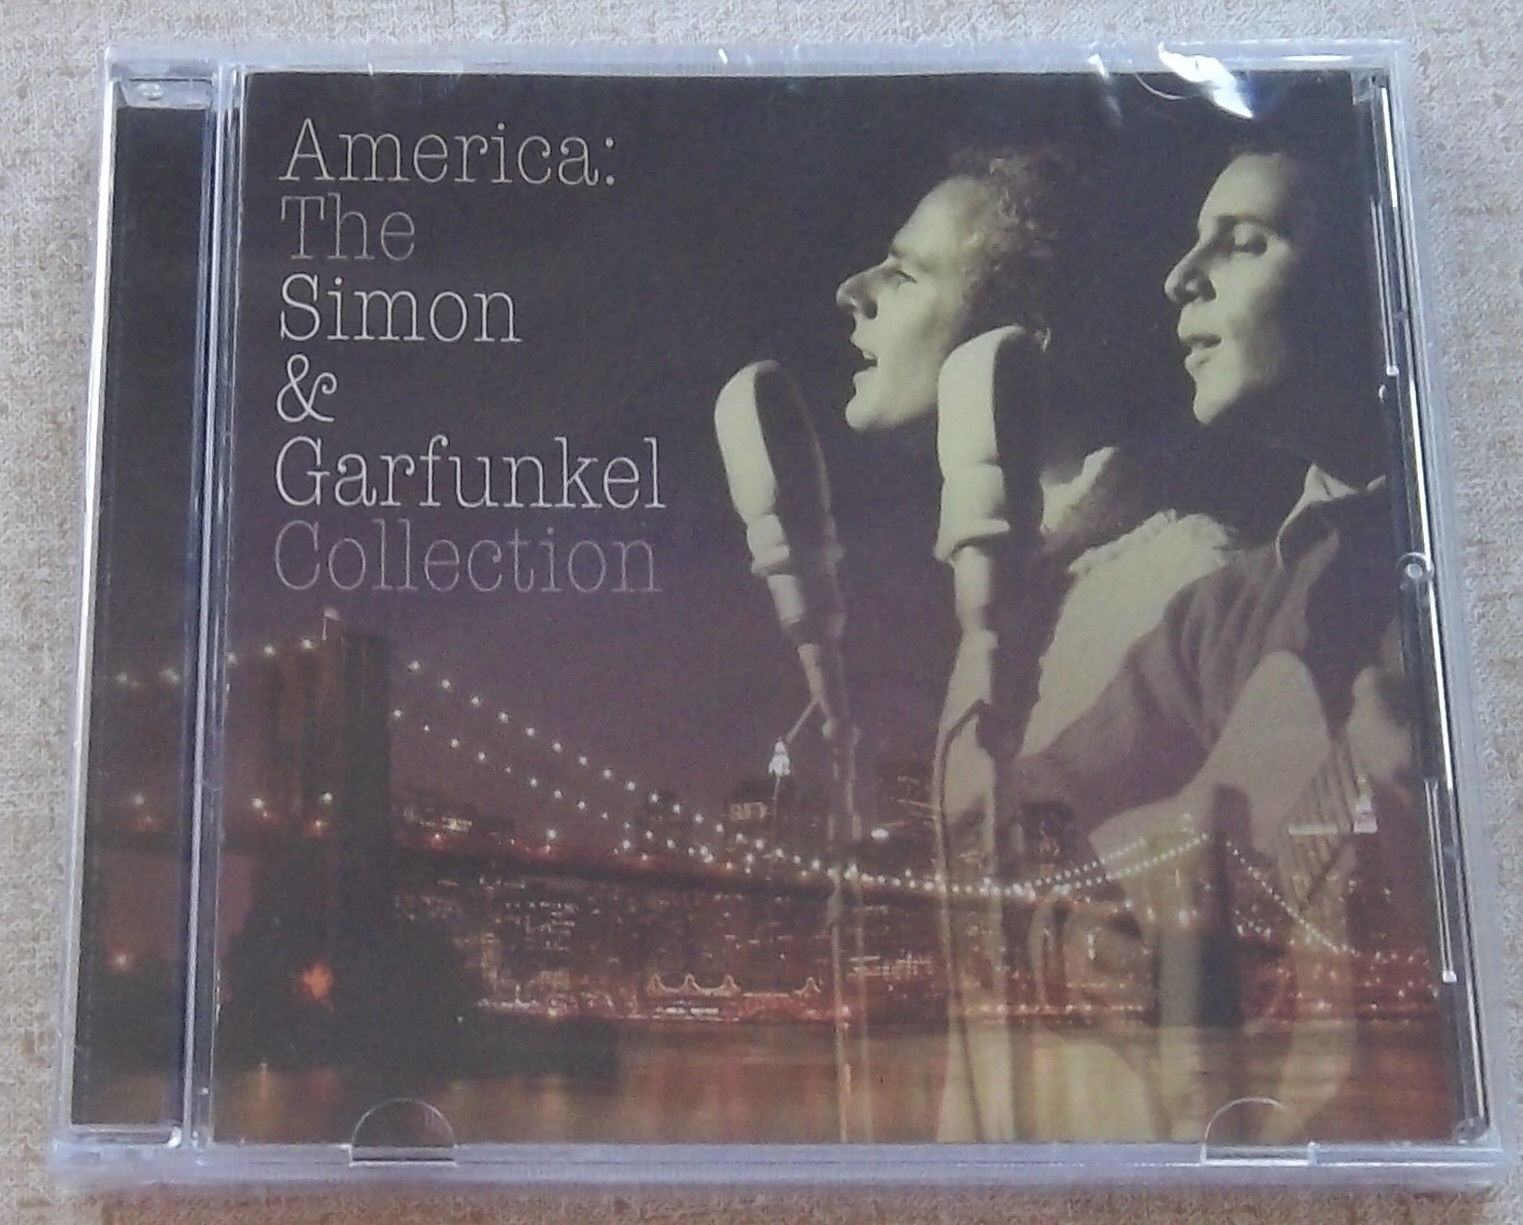 America The Simon Amp Garfunkel Collection South Africa Cat